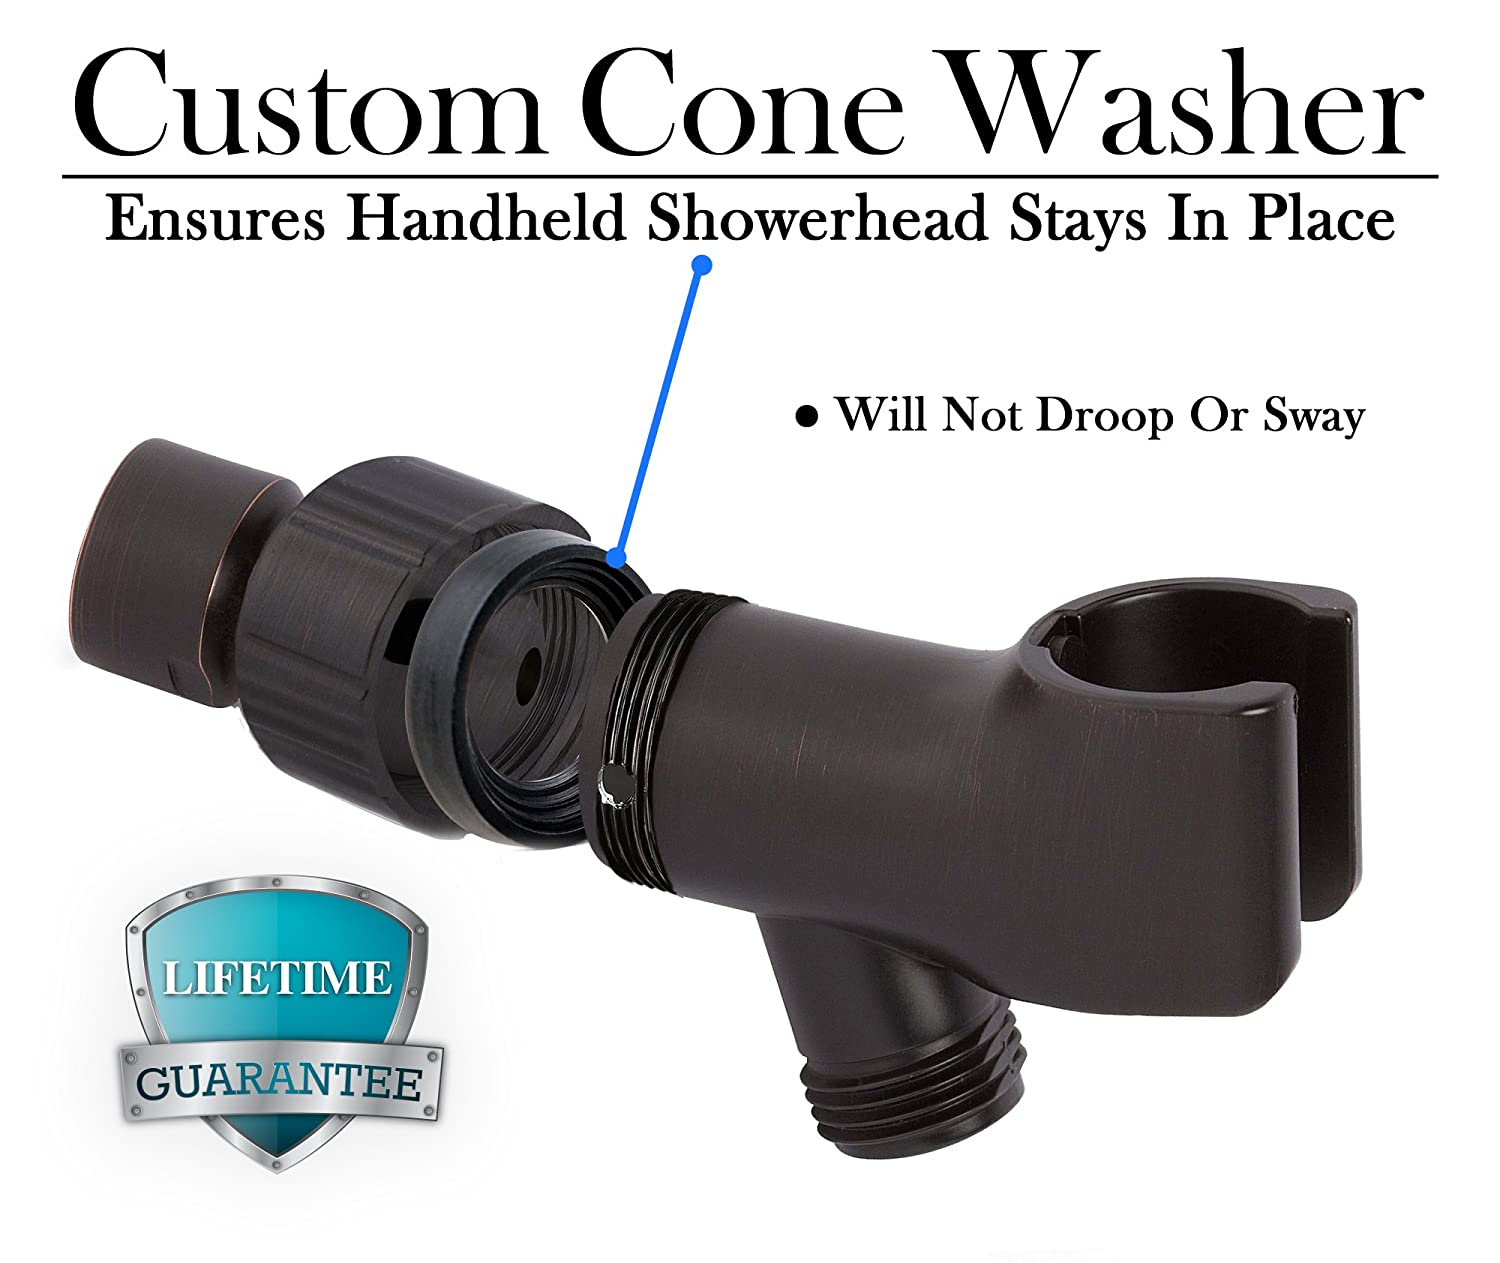 Showerhead Mounts for Handheld Showerheads Shower Head Holder in Brass Finish Arm Bracket with Swivel Ball Connector Adjustable Universal 1//2 in Male Female Shower Heads Wall Mount ShowerMaxx